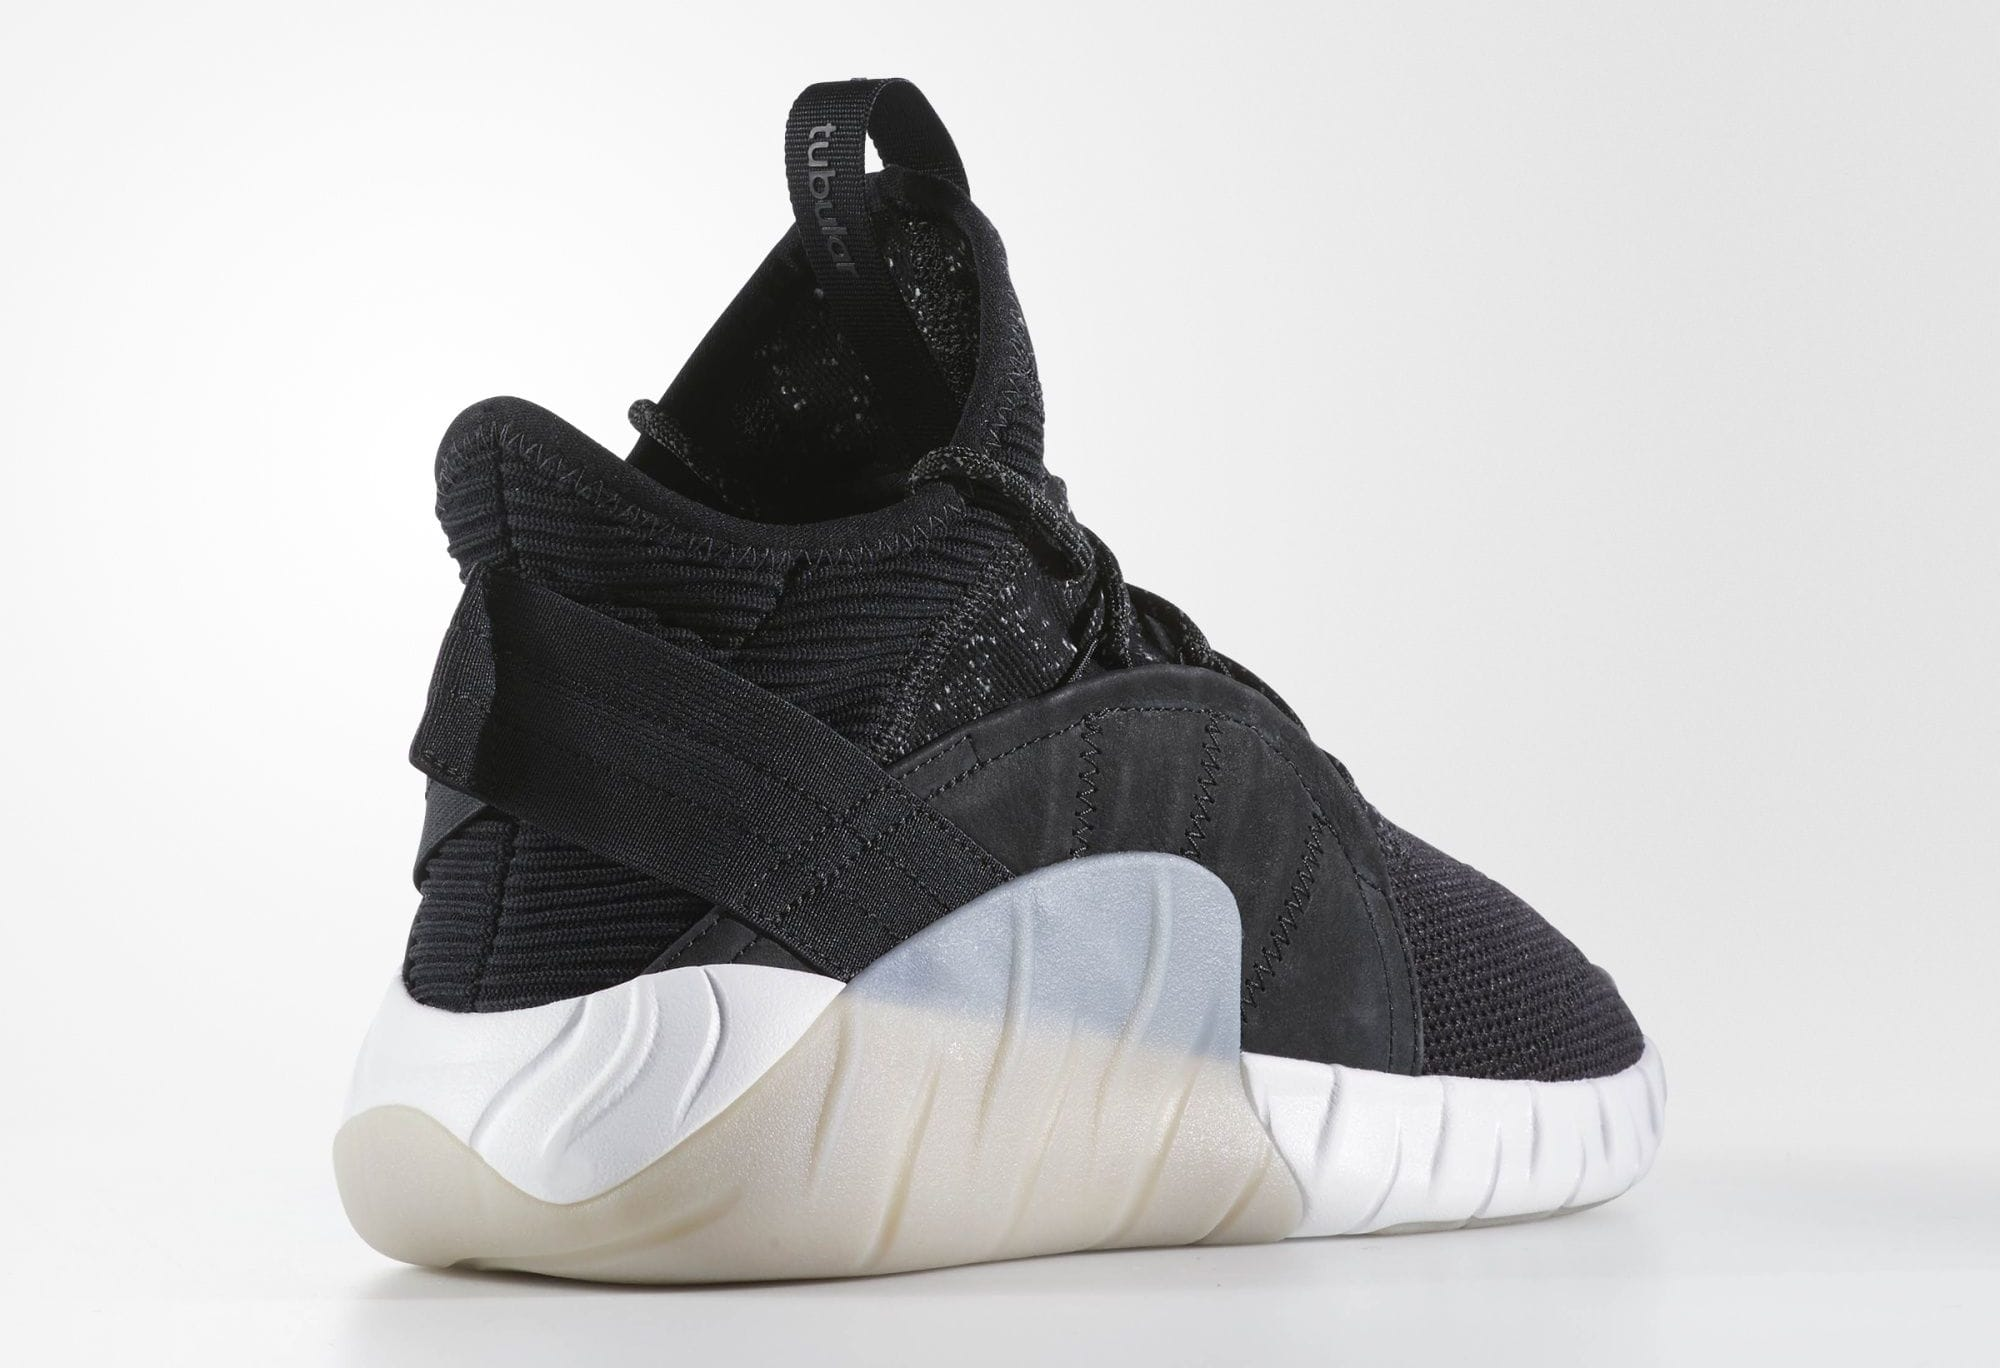 Cheap Adidas Buty Tubular Doom Primeknit Shoes Białe Cheap Adidas Poland